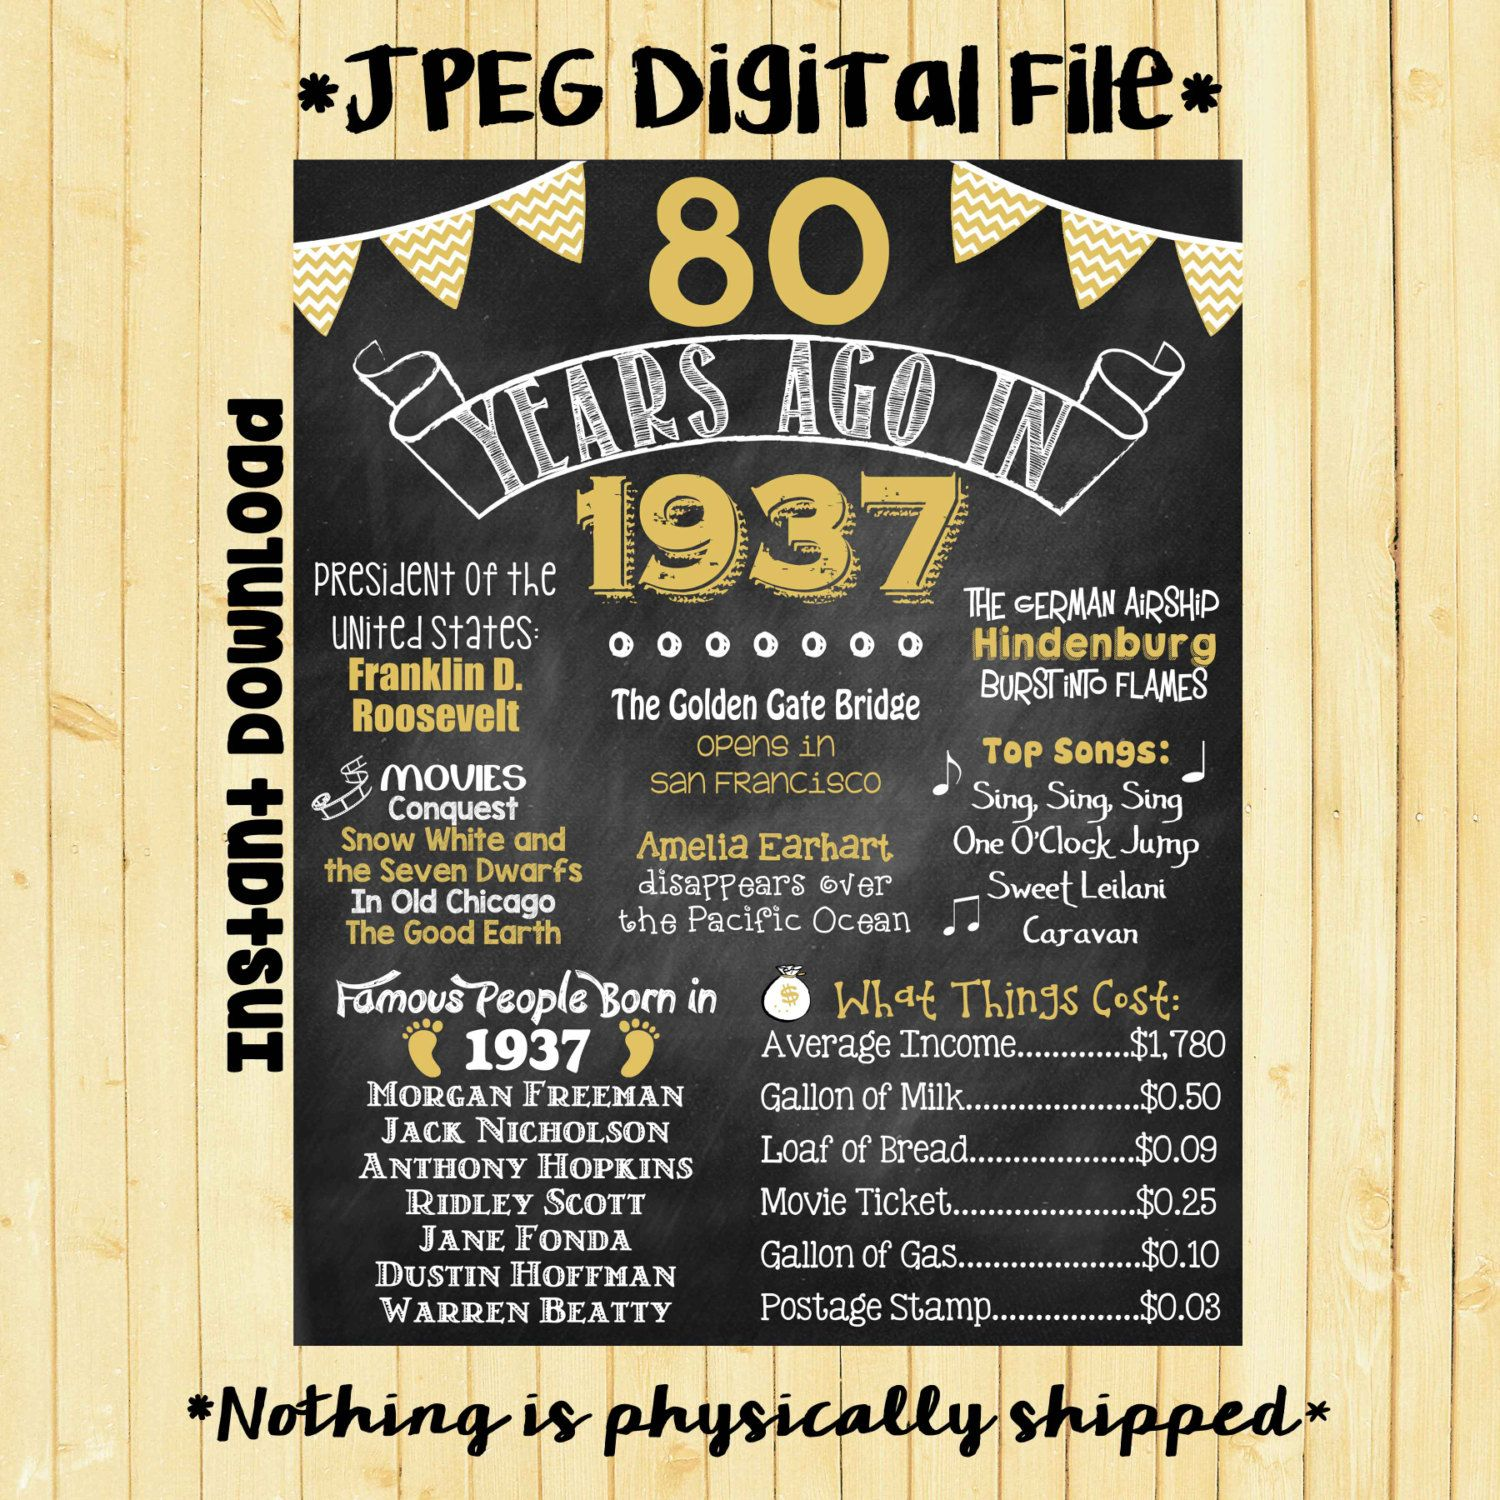 Quotes 75Th Birthday Gold 80Th Birthday Chalkboard 1937 Poster 80 Years Ago In 1937